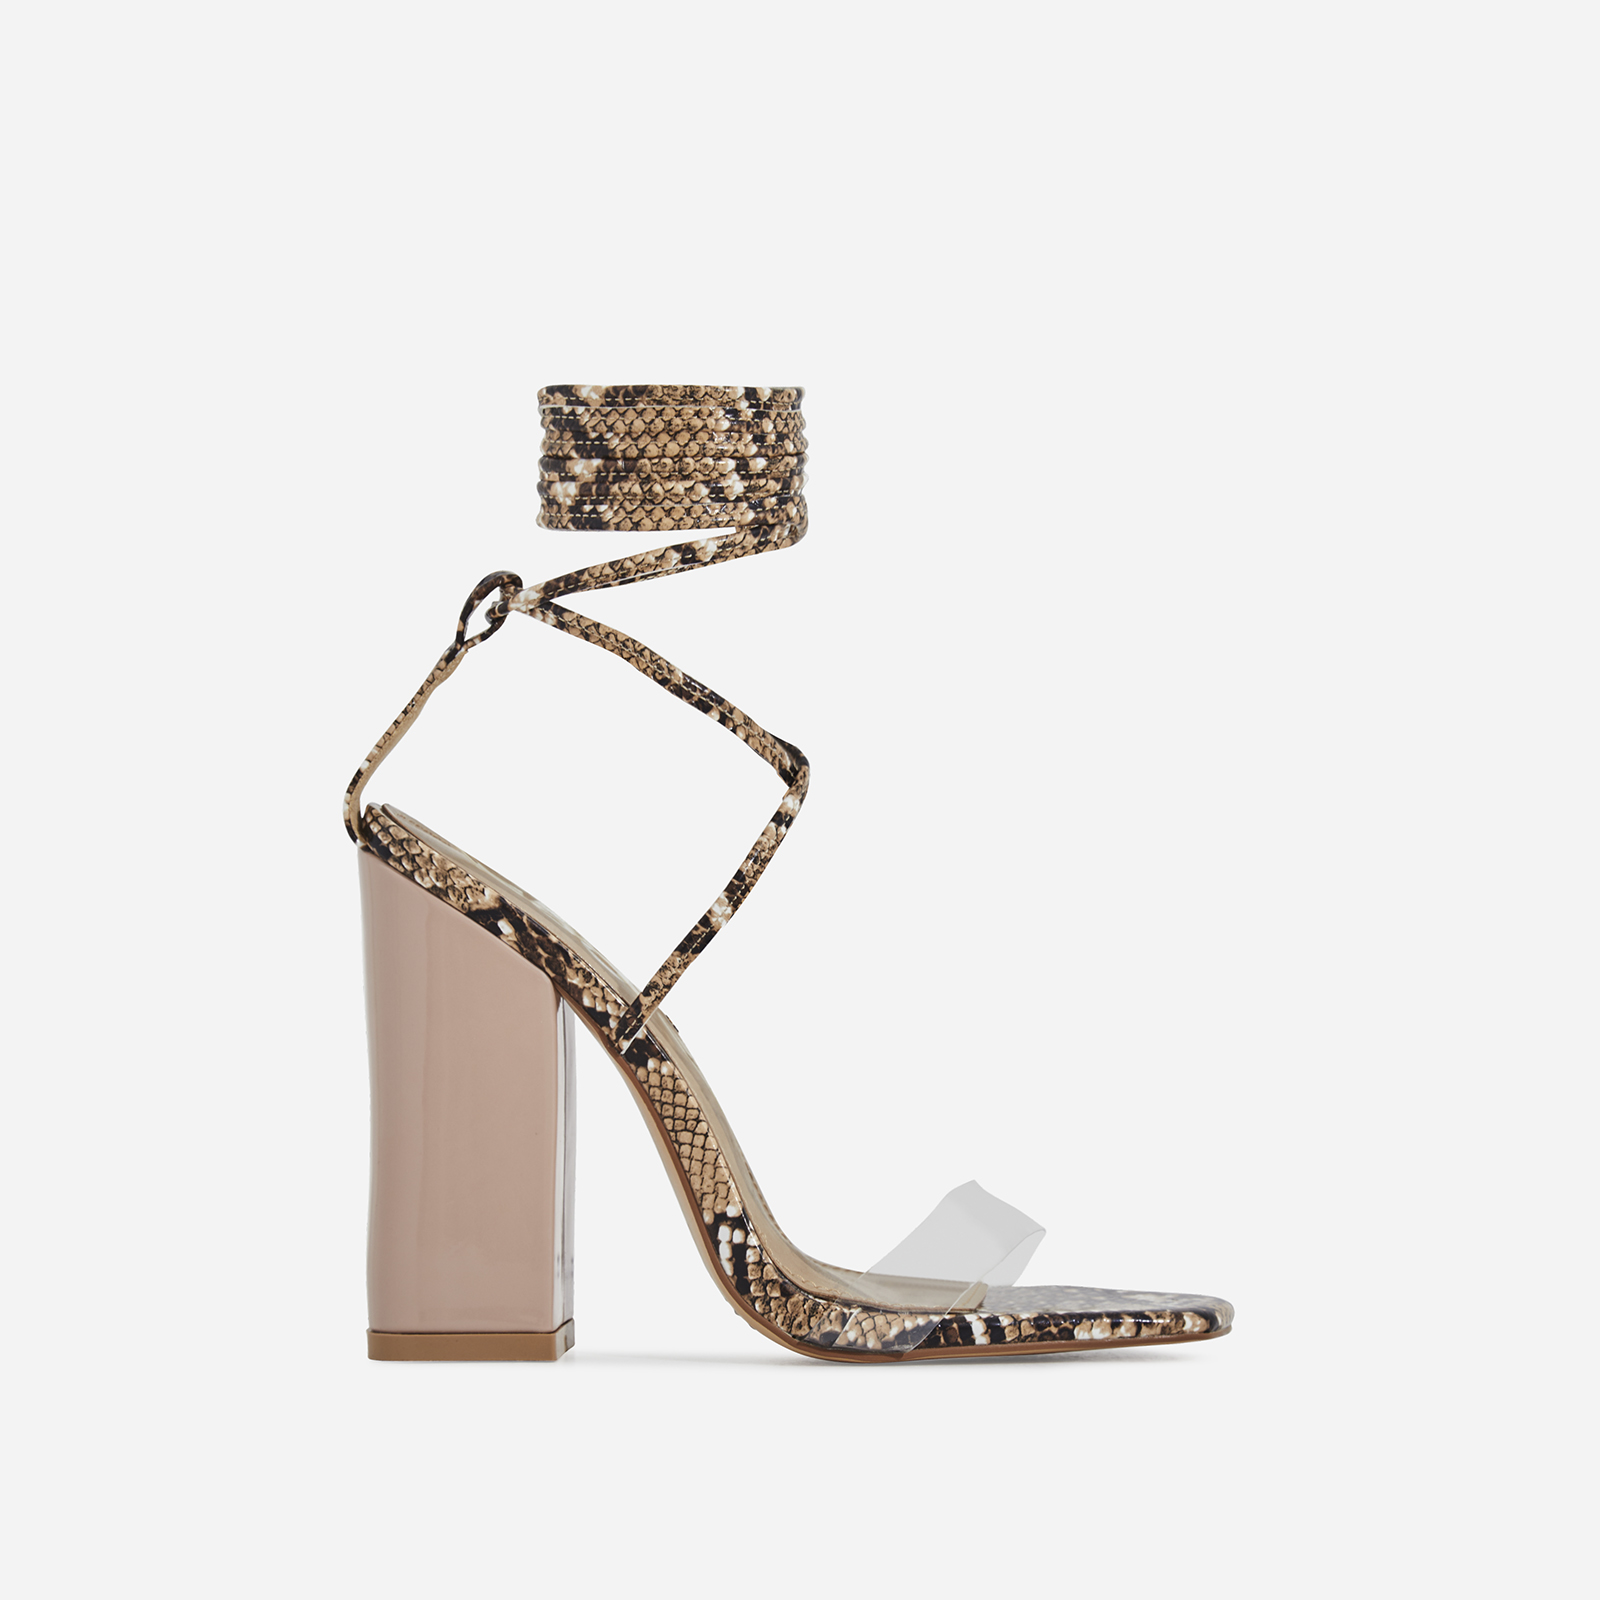 Elini Patent Block Heel Perspex Lace Up Heel In Nude Snake Print Faux Leather